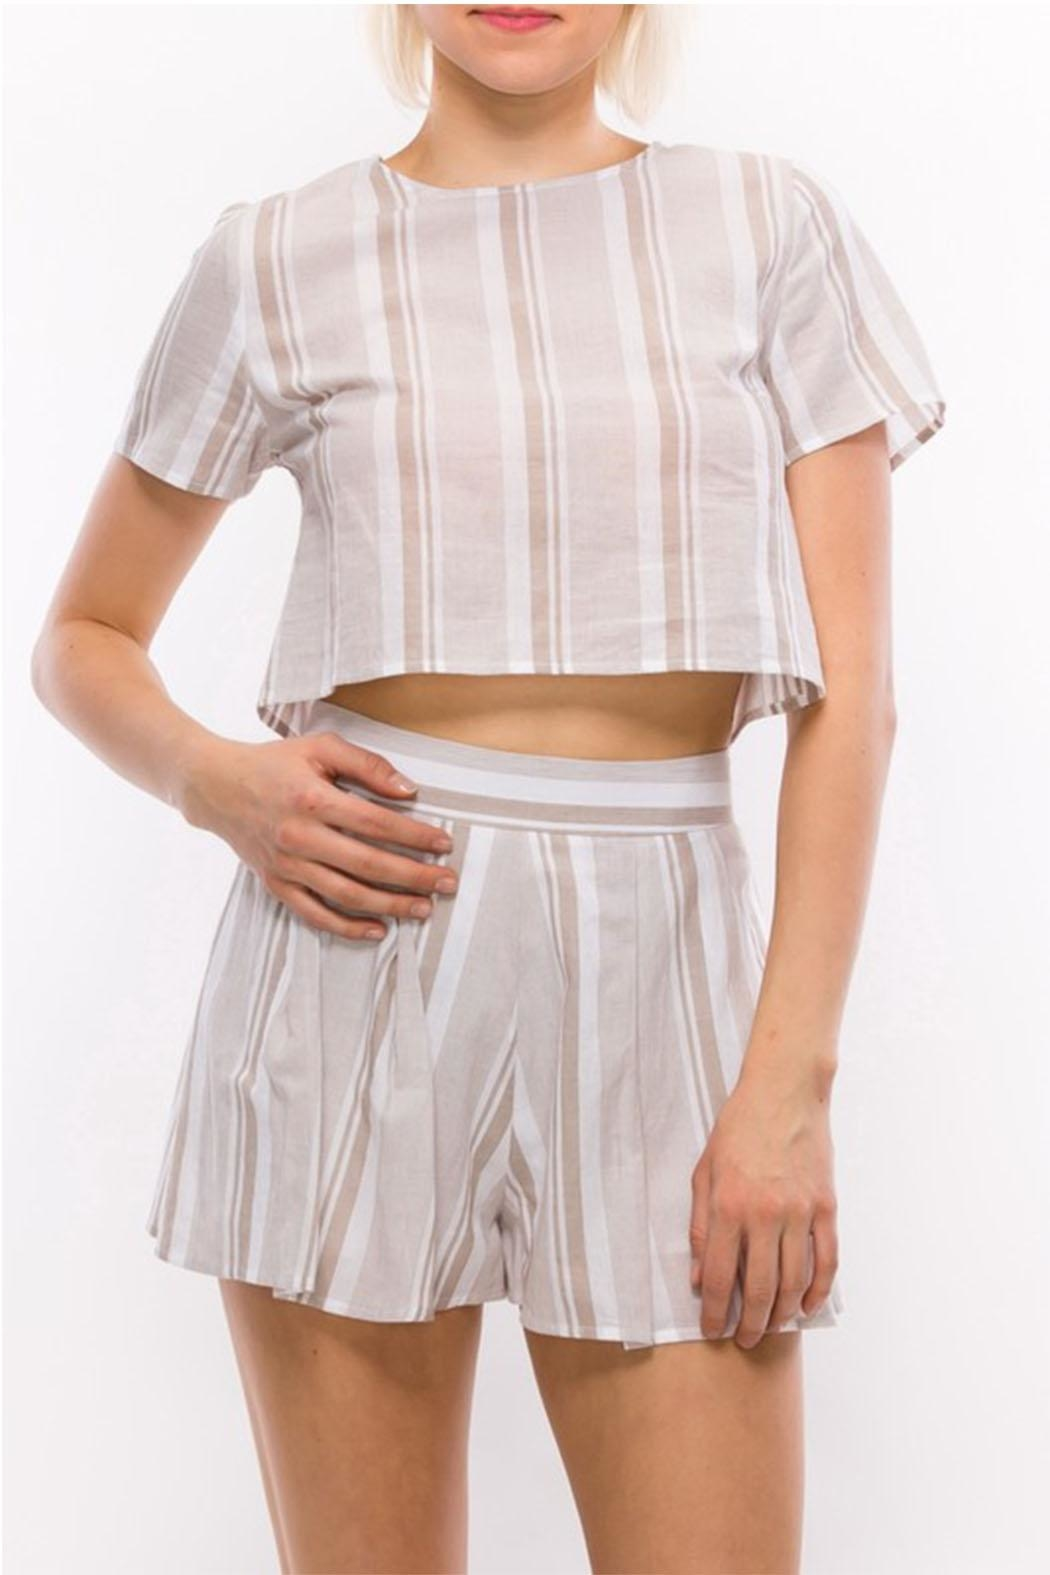 HYFVE Stripe Top - Front Cropped Image